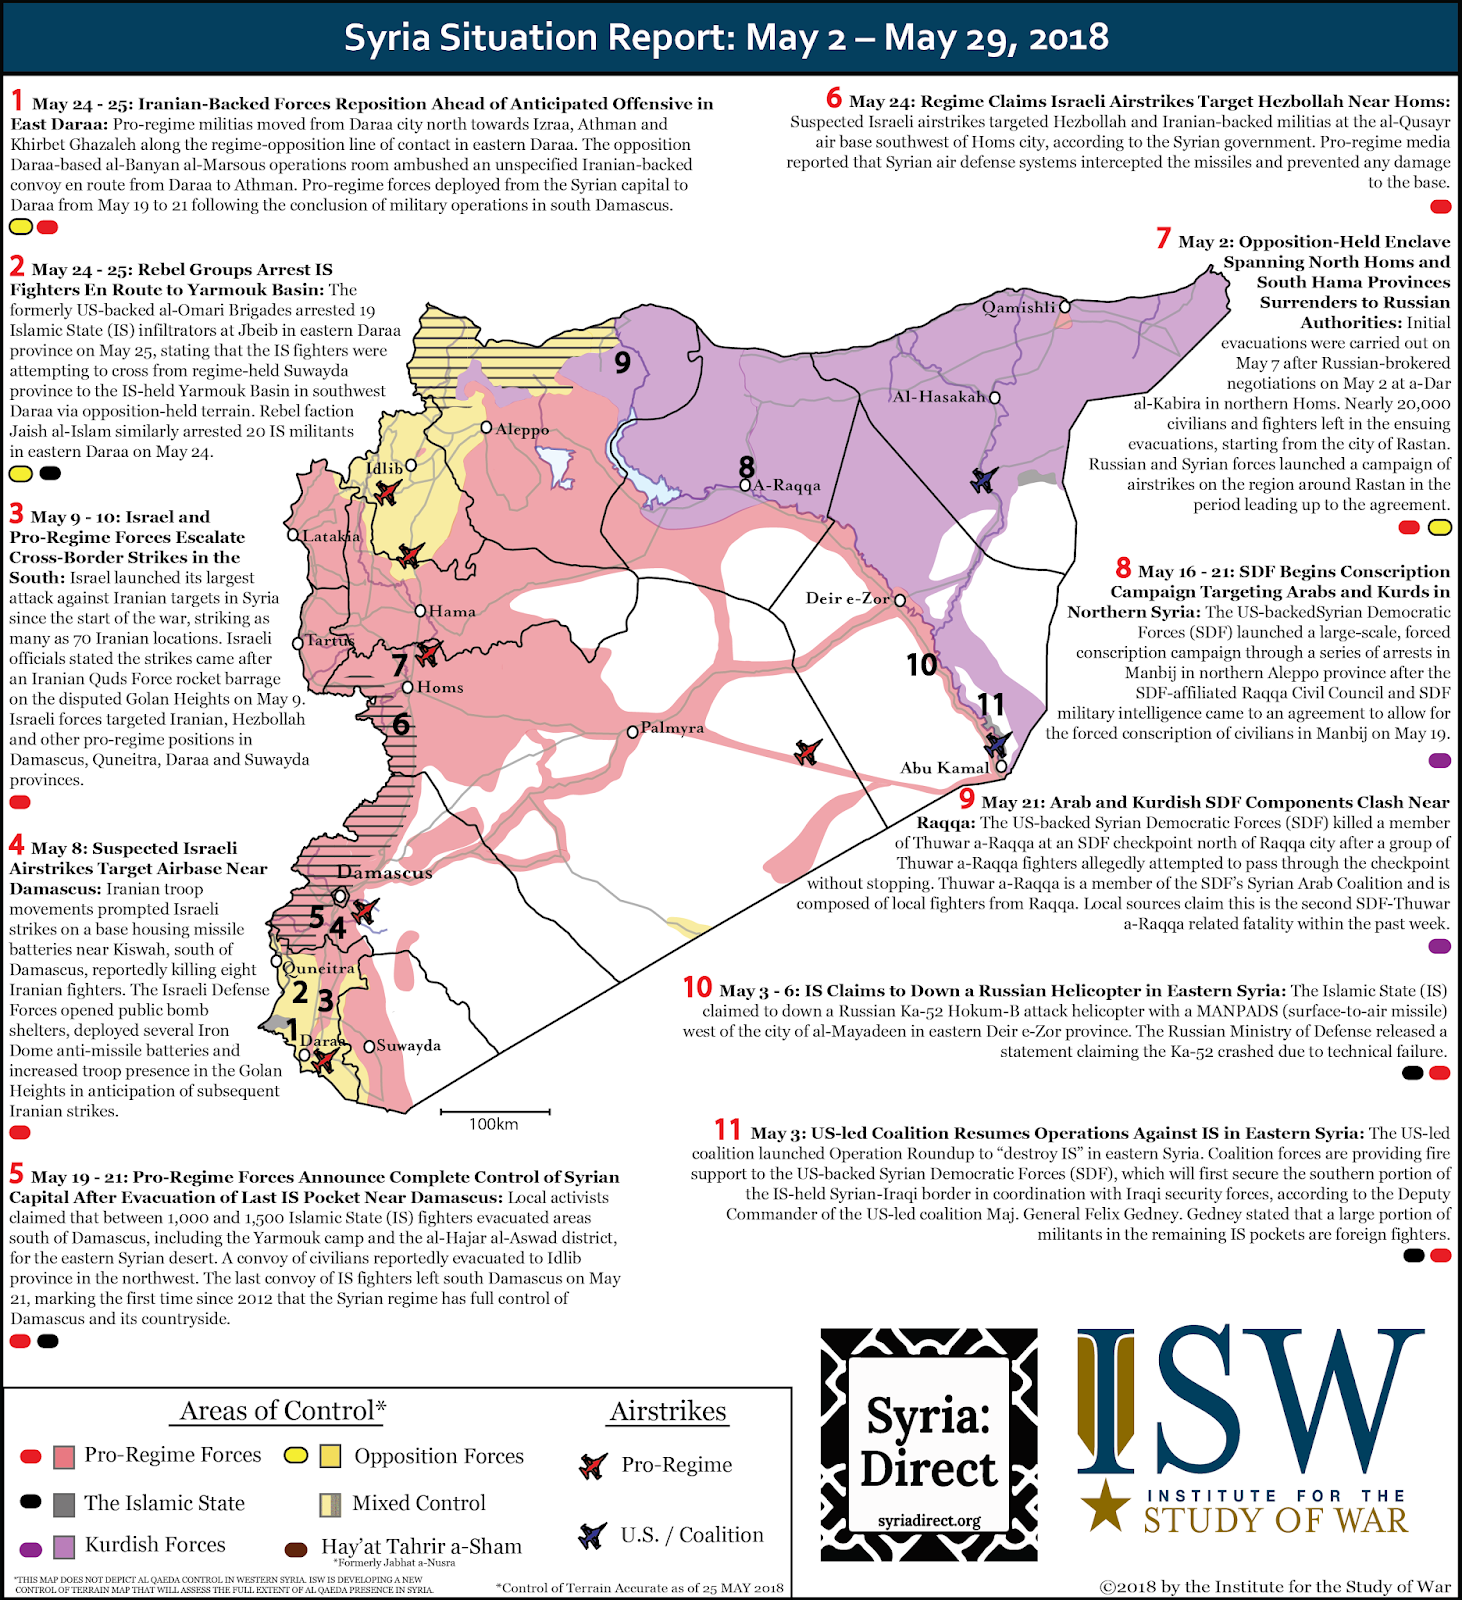 the map depicts significant developments in the war in syria during the period may 2 29 2018 the control of terrain represented on the map is accurate as